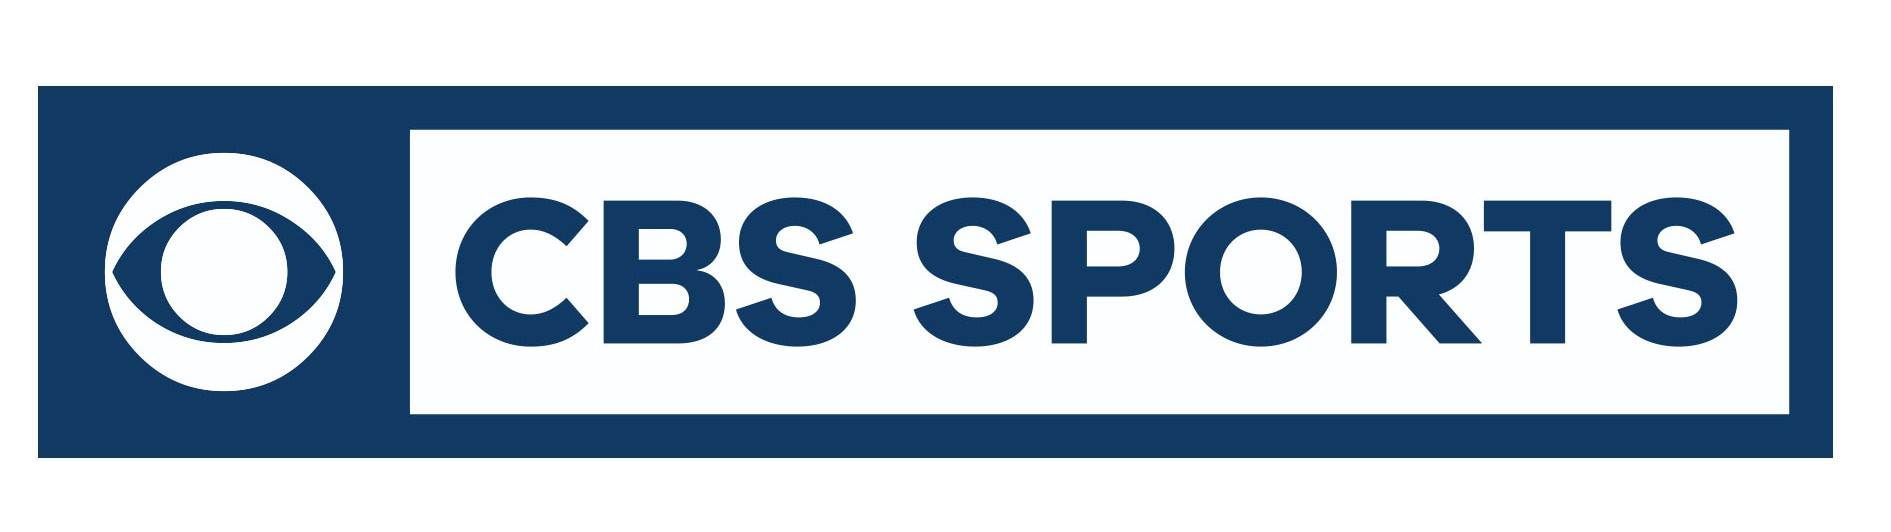 when is college football start cbs sports network college football